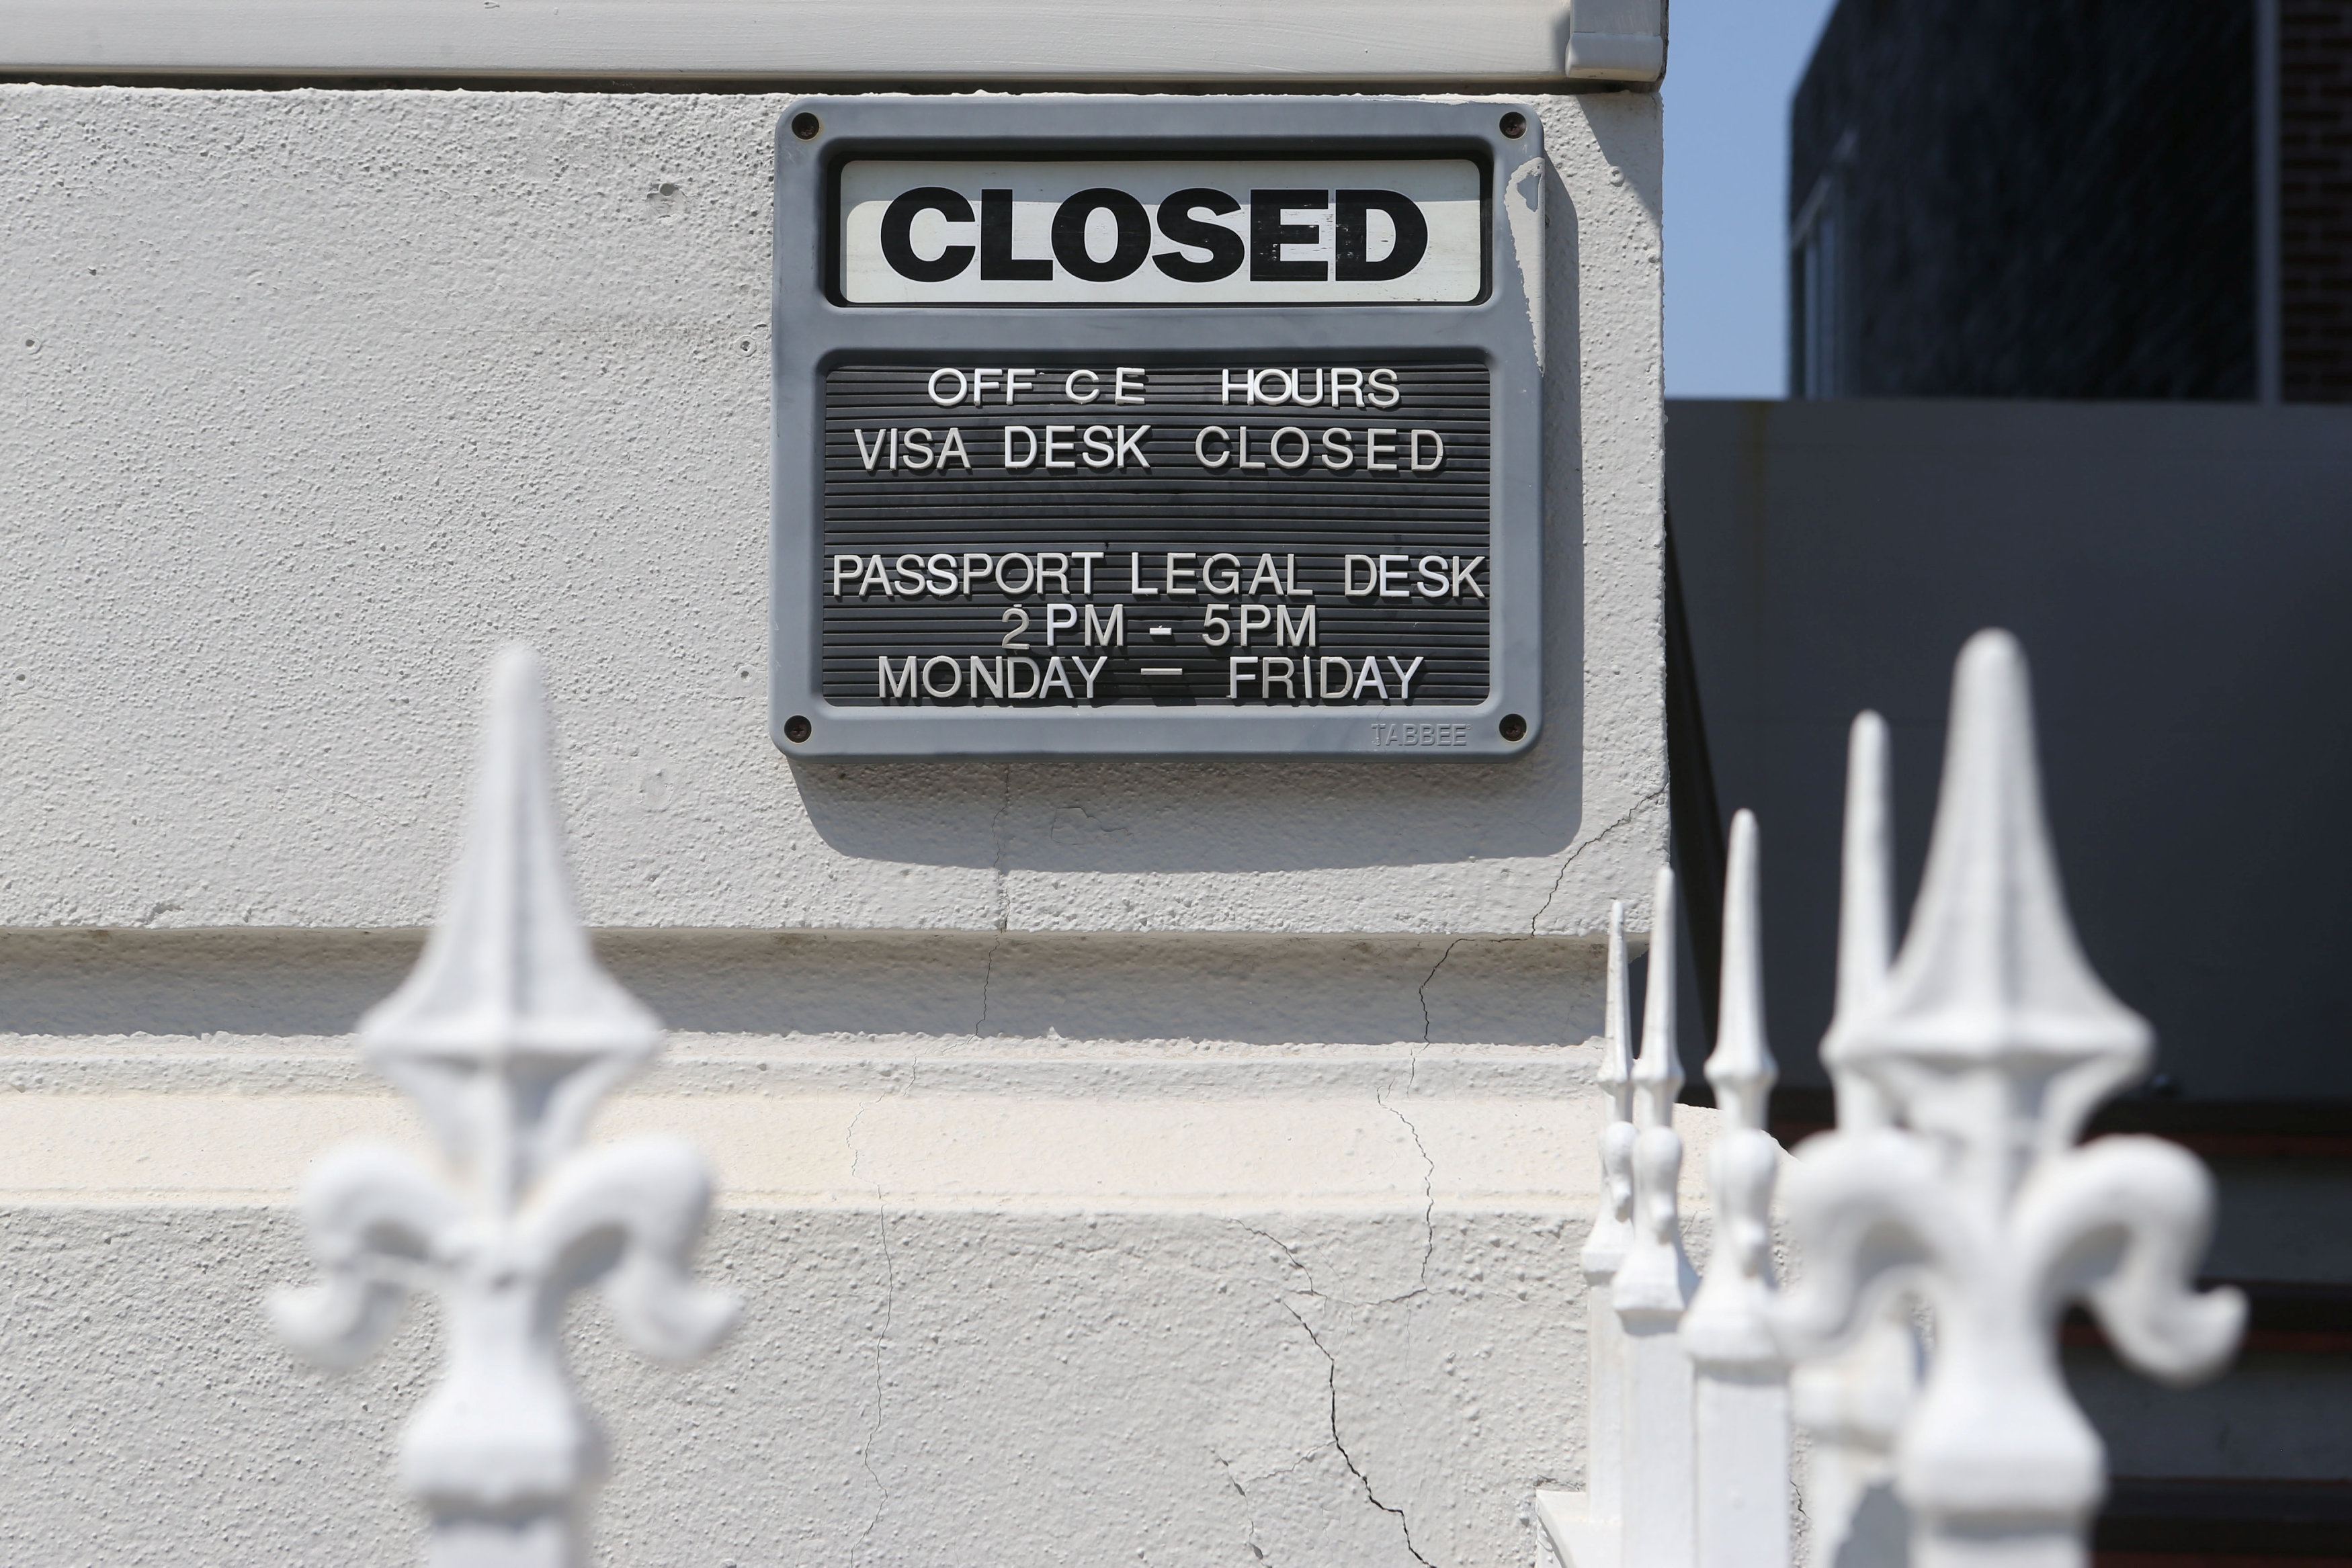 A Closed sign is seen on the Russian Consulate building, where smoke was seen earlier coming from its roof, in San Francisco, Calif., on Sept. 1, 2017. (REUTERS/Beck Diefenbach)